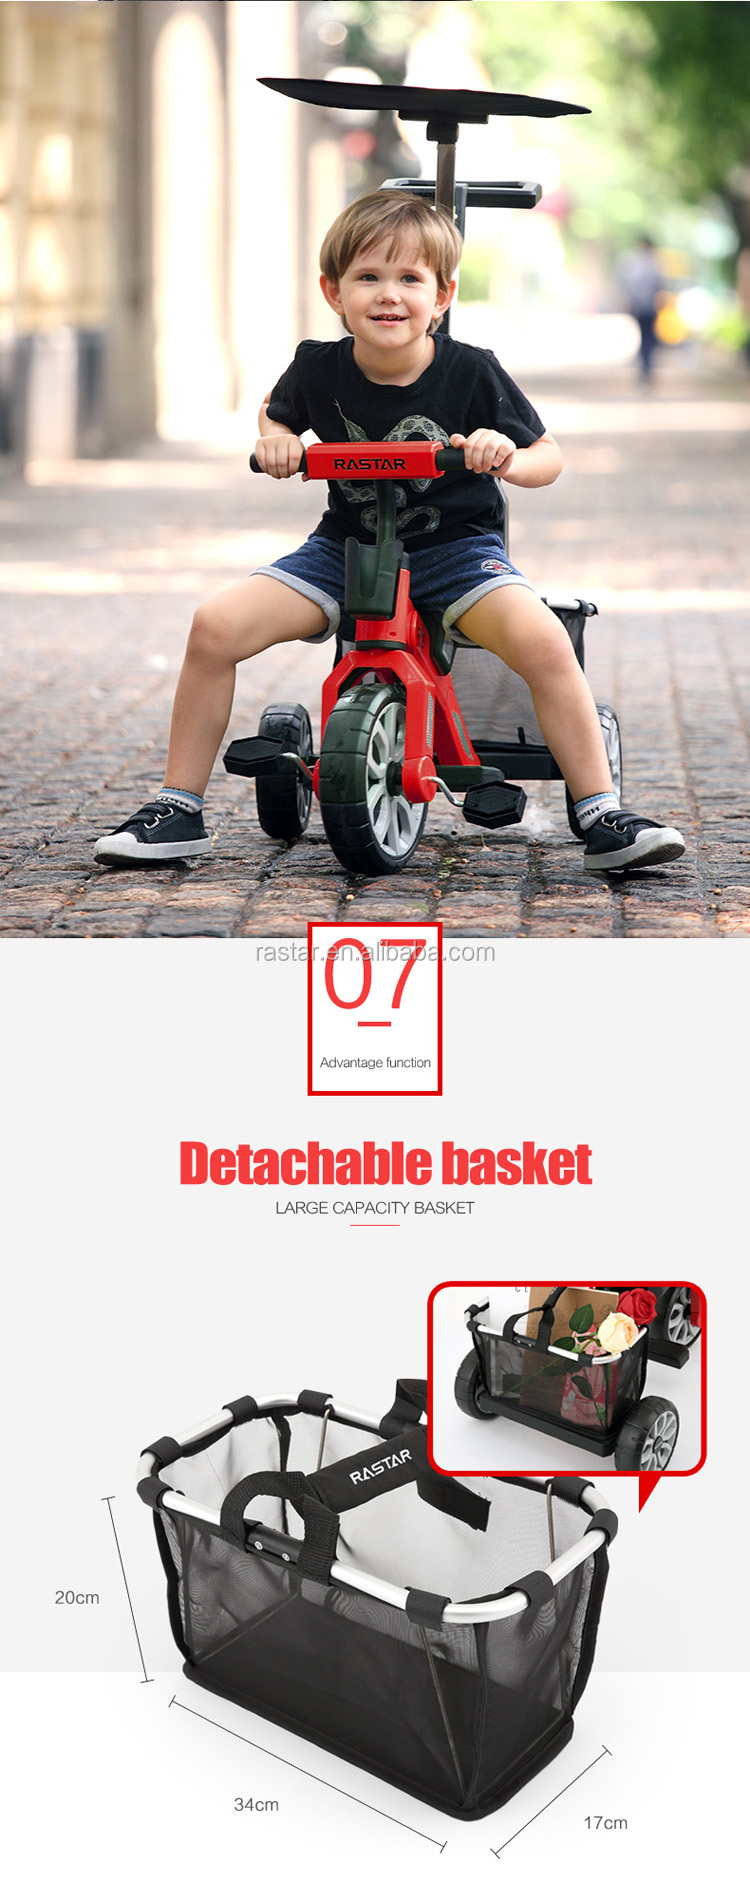 Rastar kid balancing bike with shield and holder kid foldable tricycle